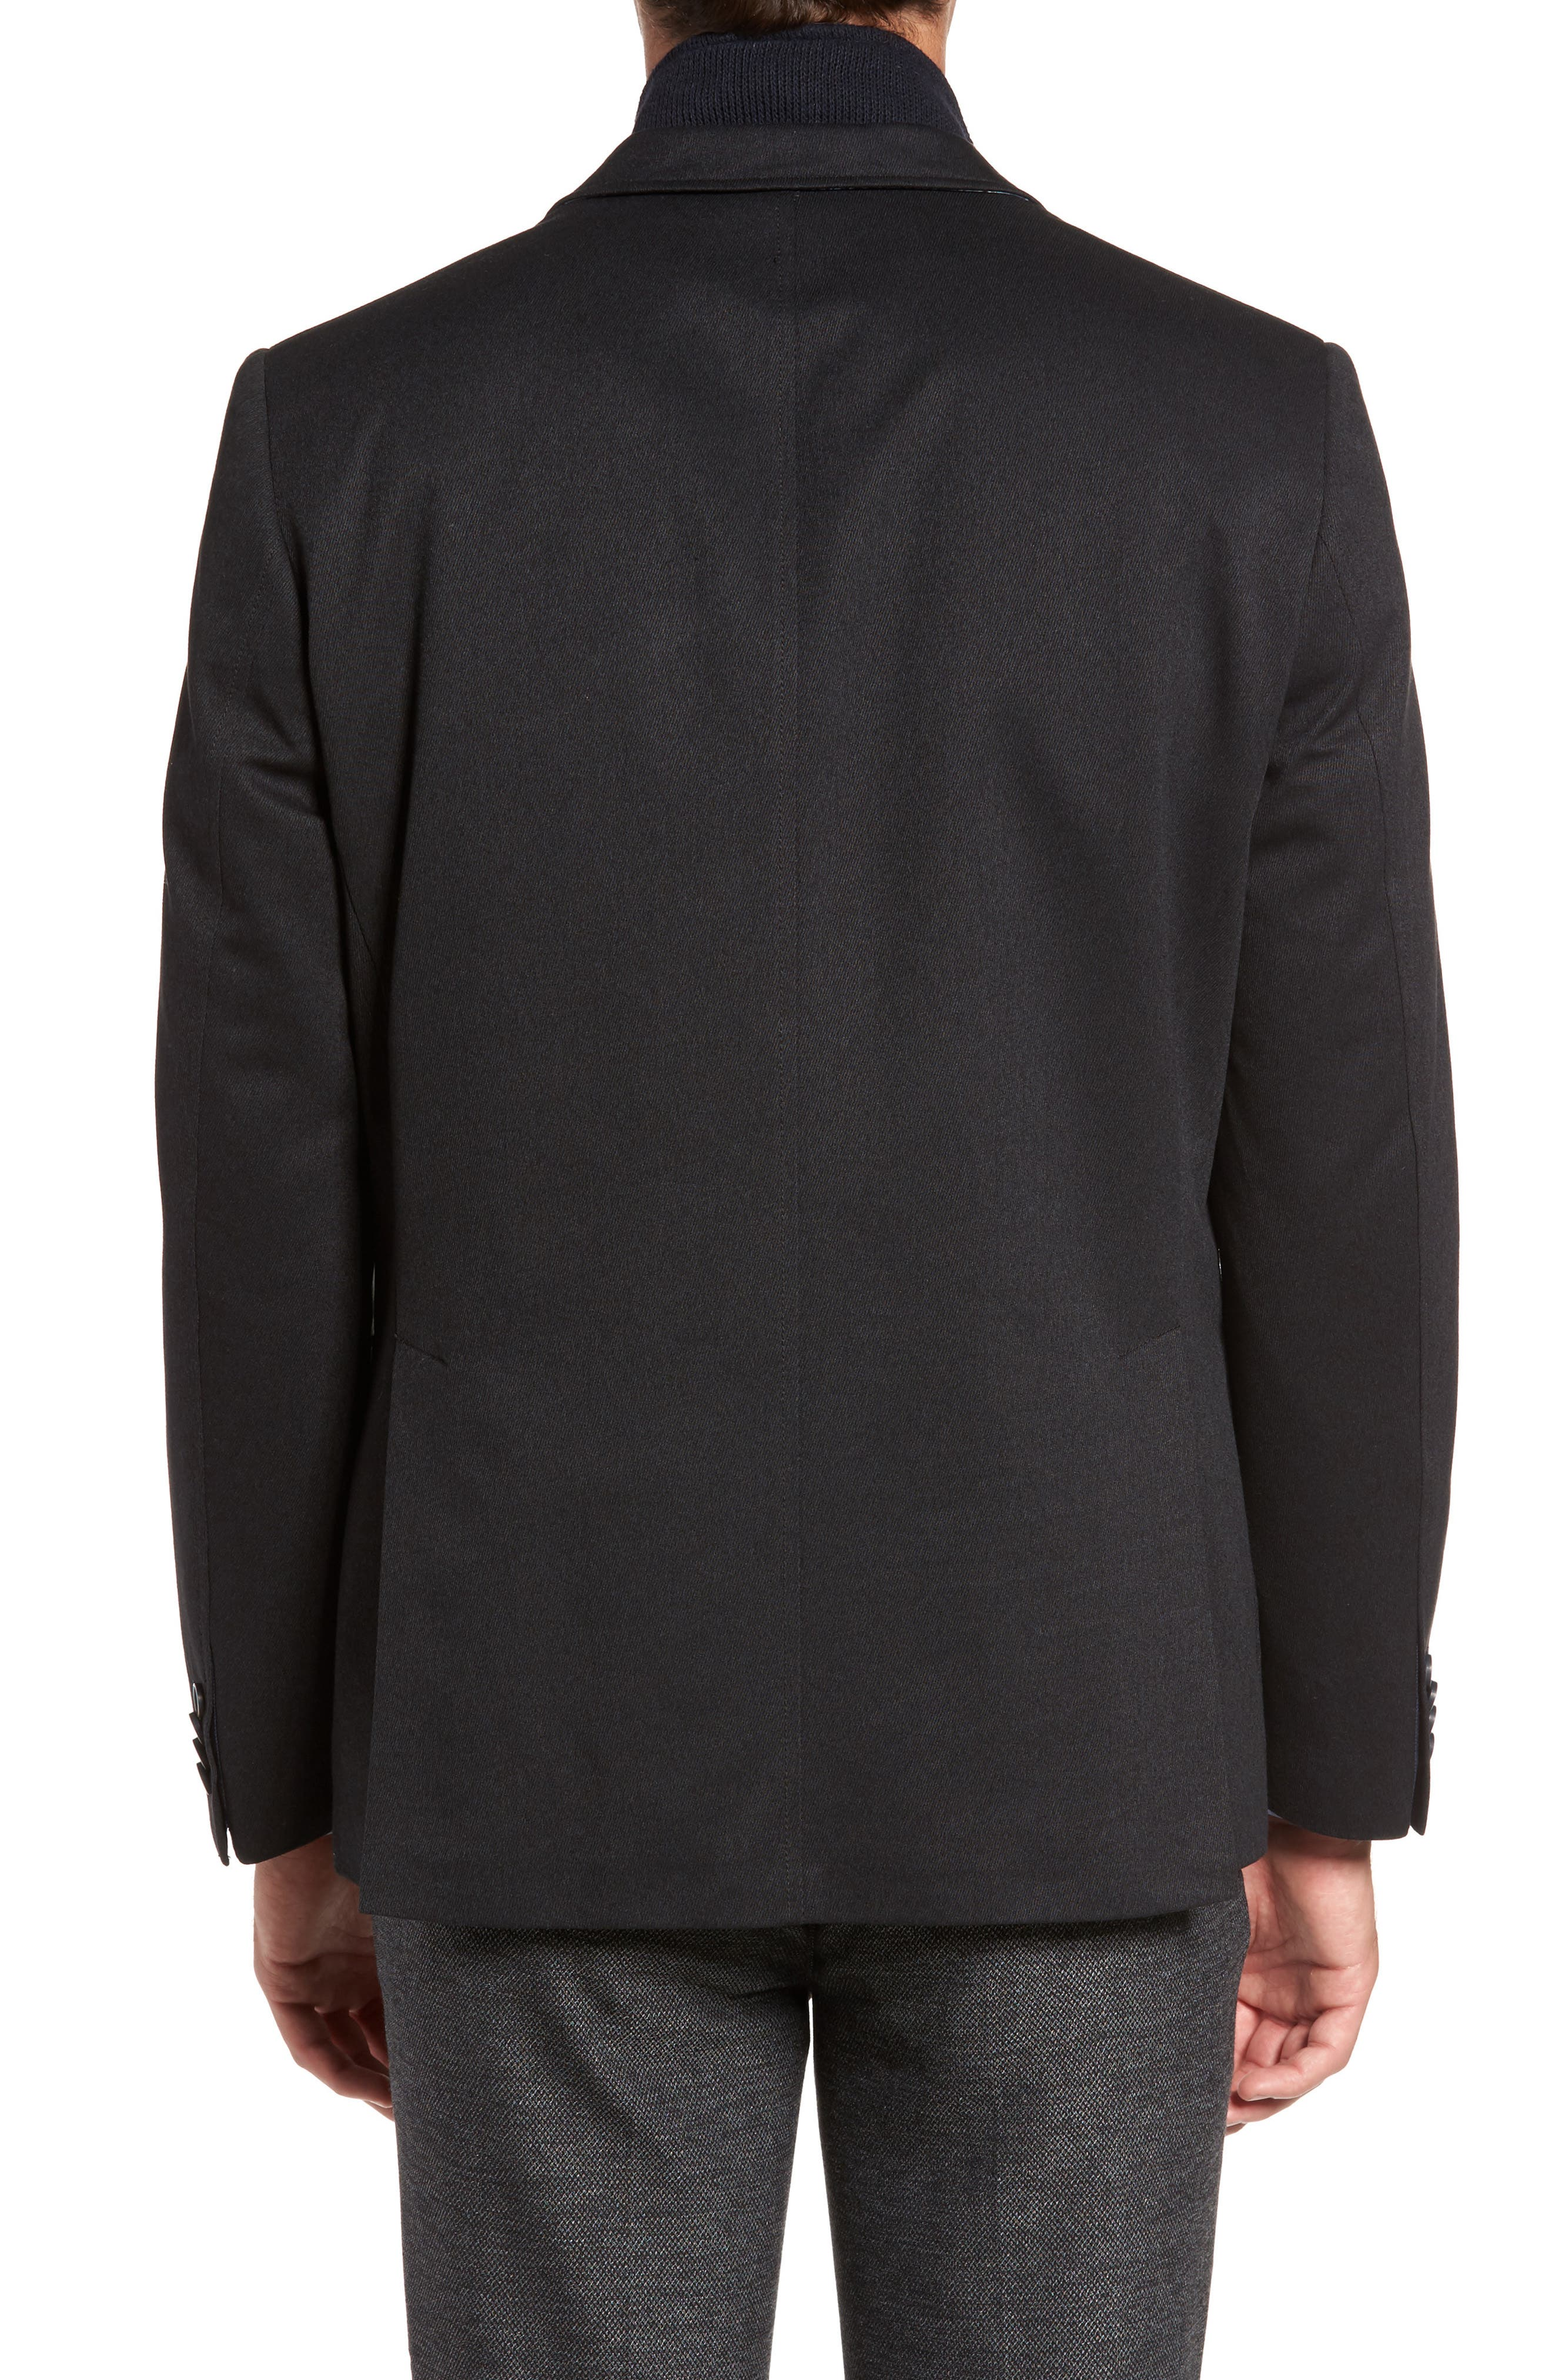 Broderick Technical Outerwear Jacket with Detachable Knit Bib,                             Alternate thumbnail 2, color,                             410